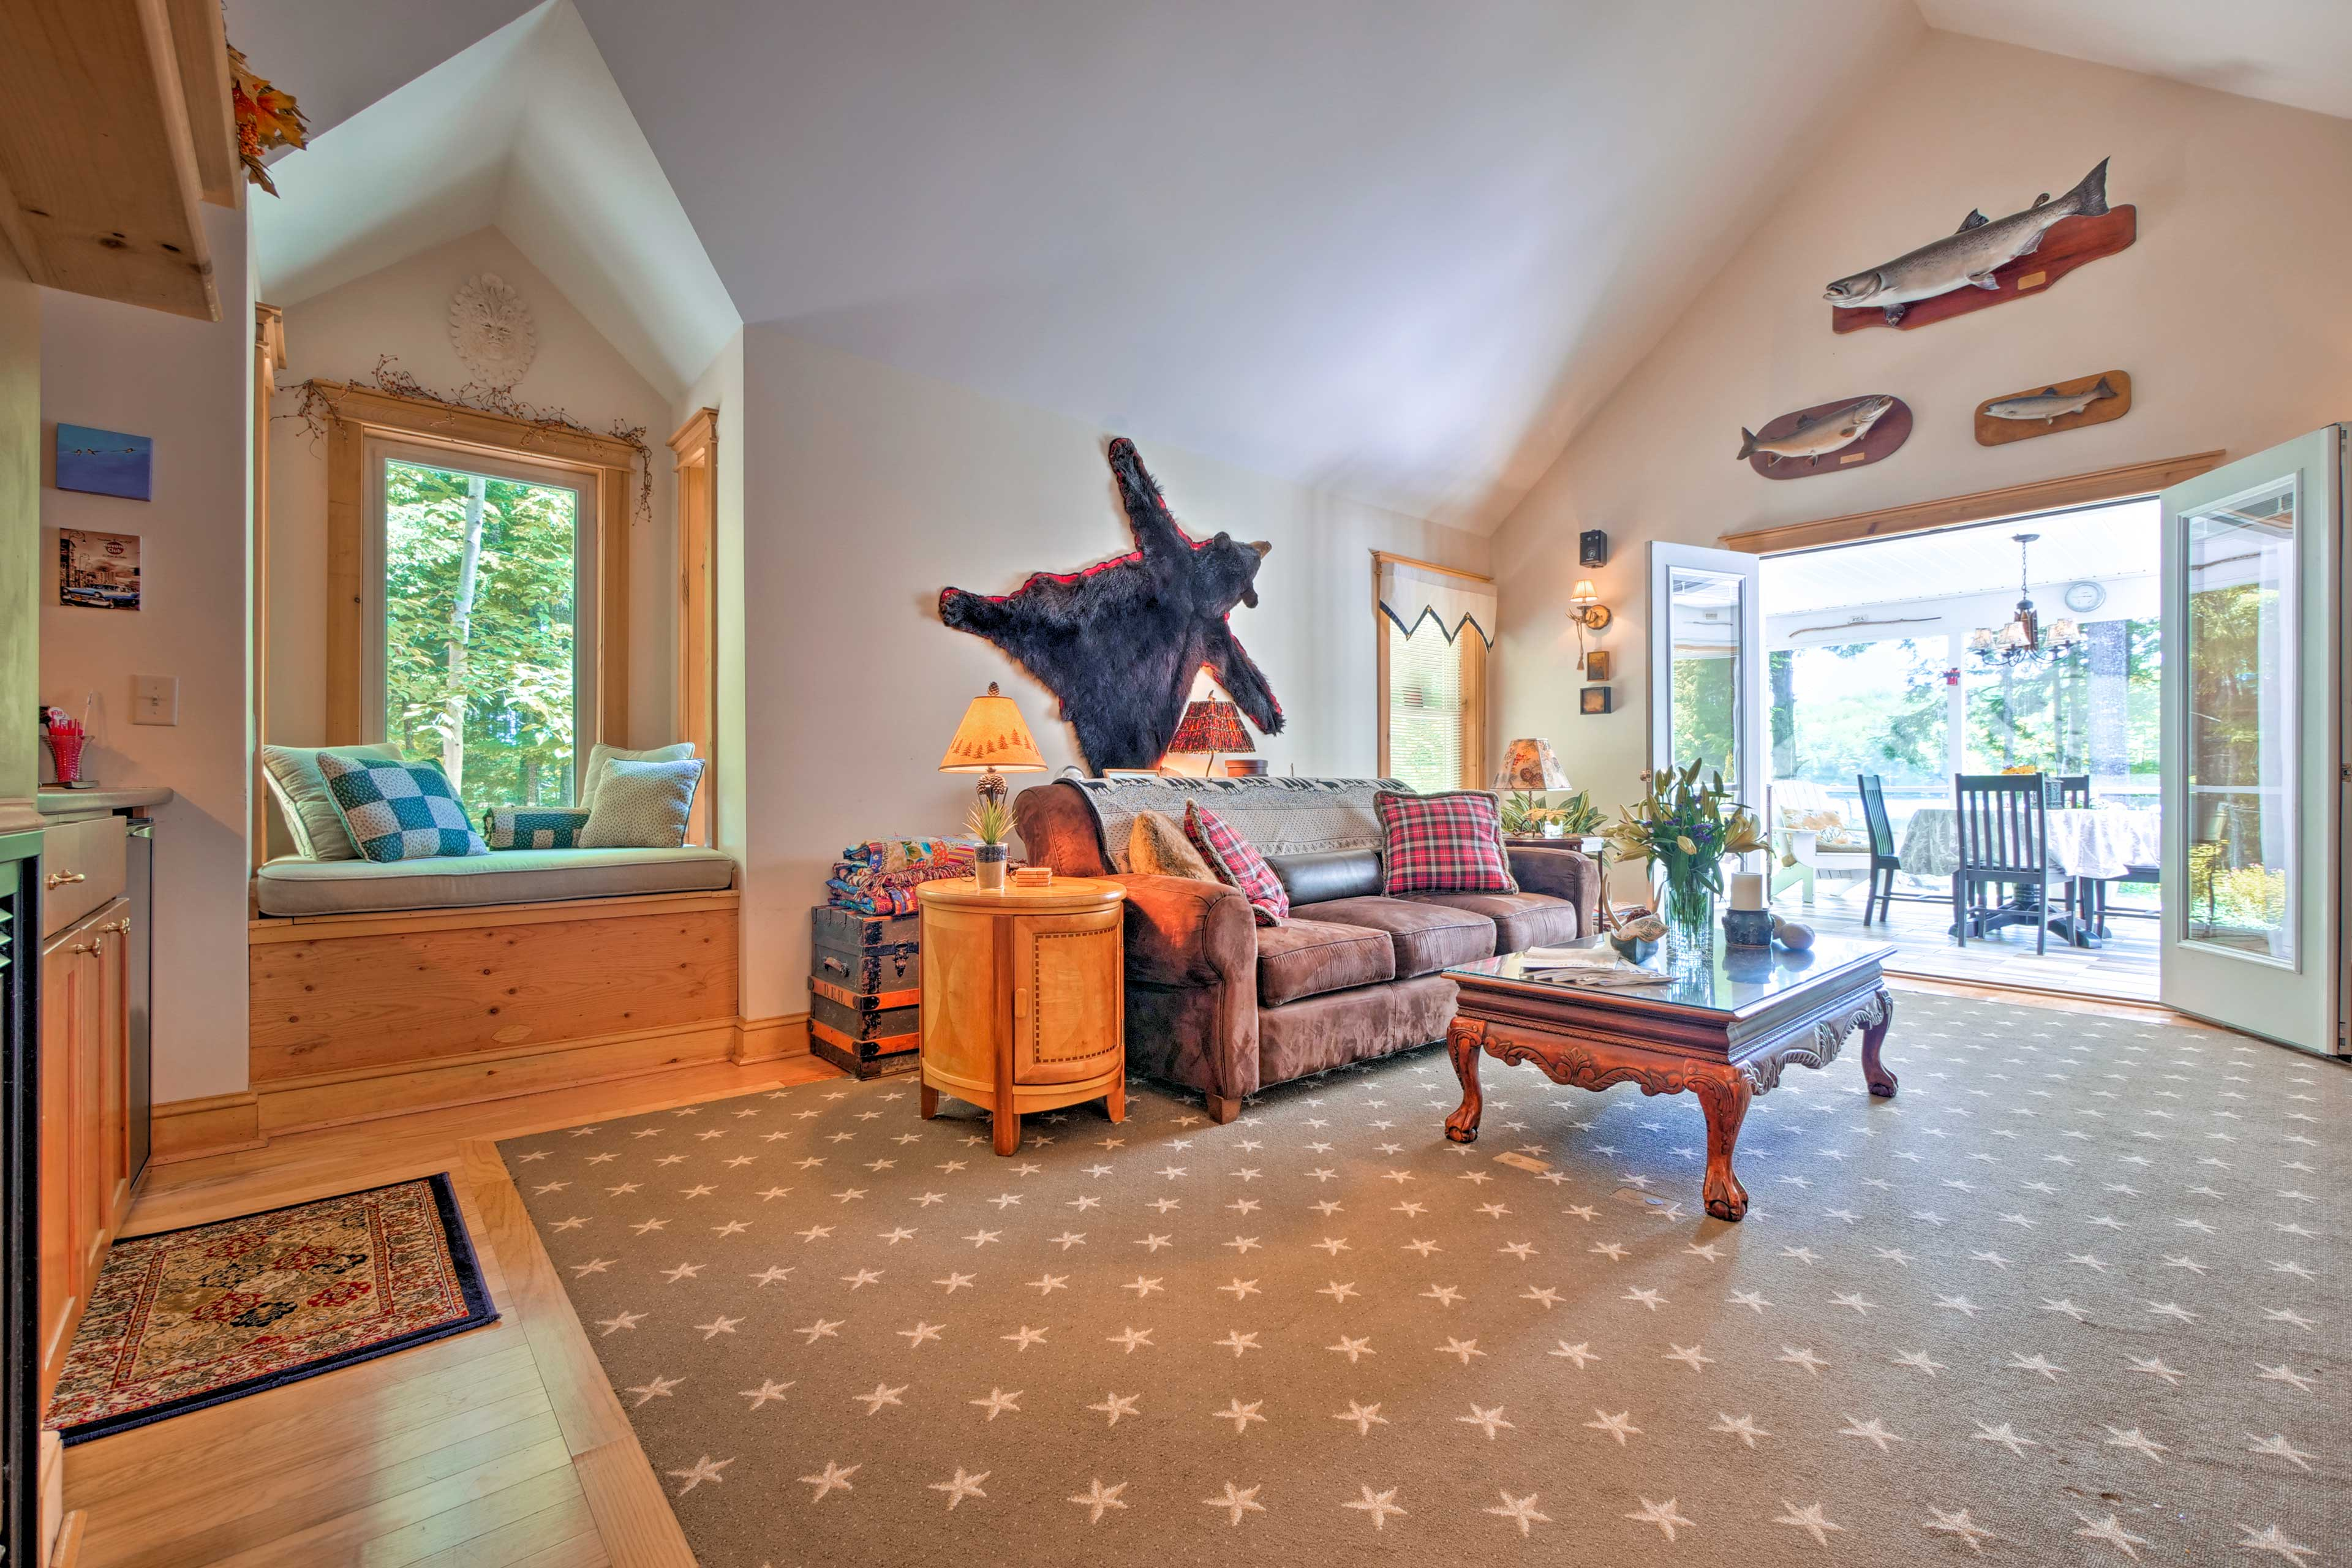 Beautiful furnishings and decorations fill the expansive living room.